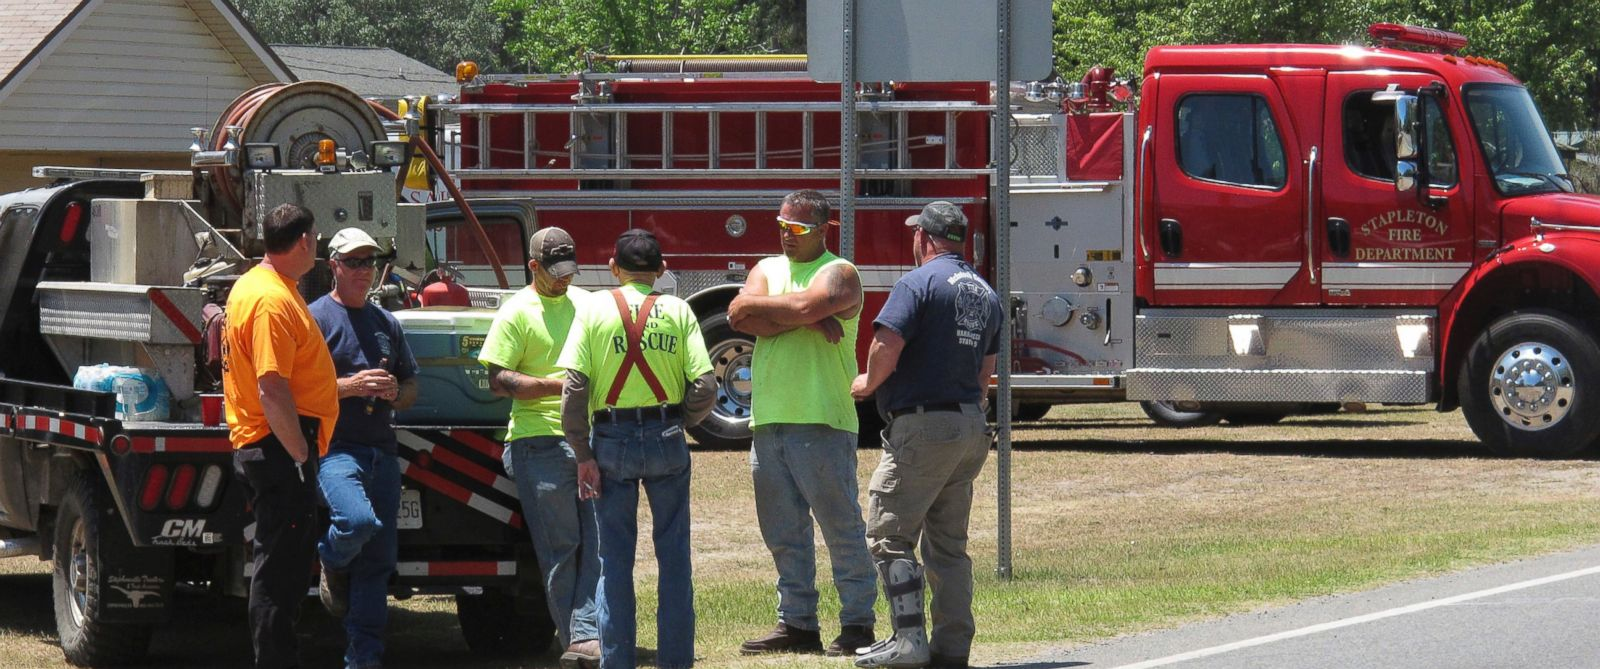 PHOTO: Firefighters take a break on May 8, 2017, outside a church in St. George, Ga., where officials have issued a mandatory evacuation as a vast wildfire burns at the towns edge.